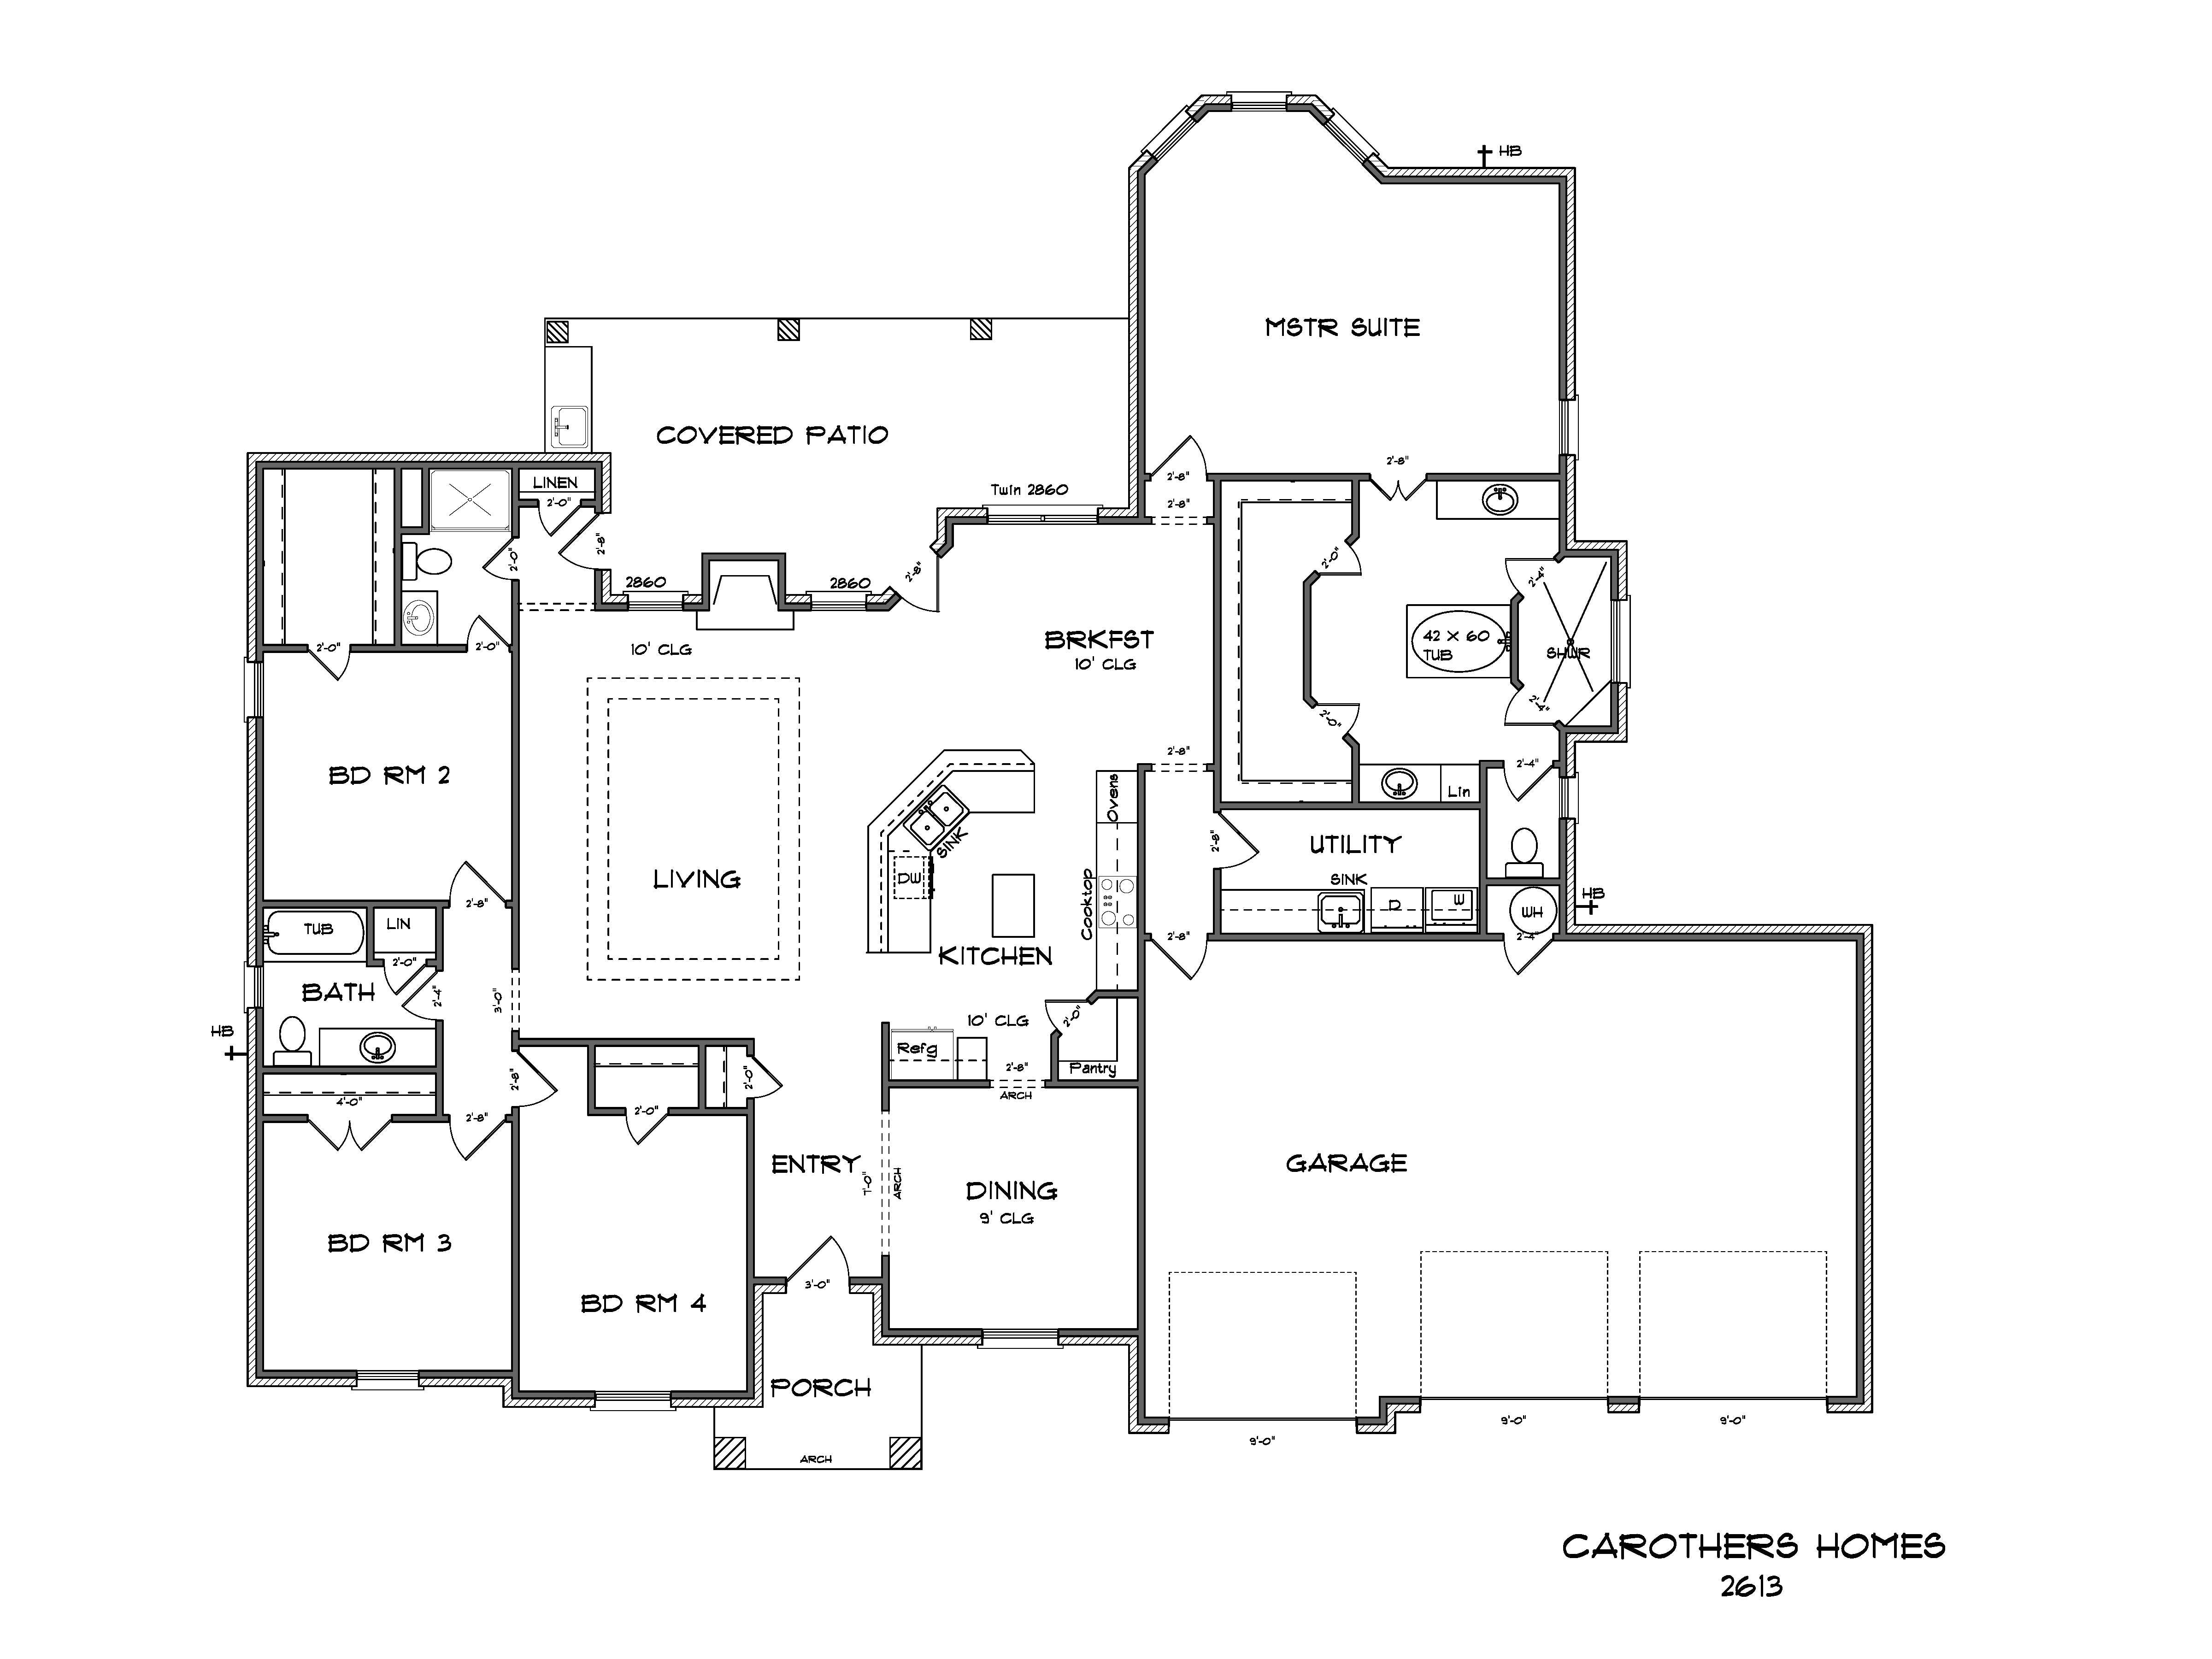 Carothers Homes - Putting Quality and Value into Central Texas Homes ...